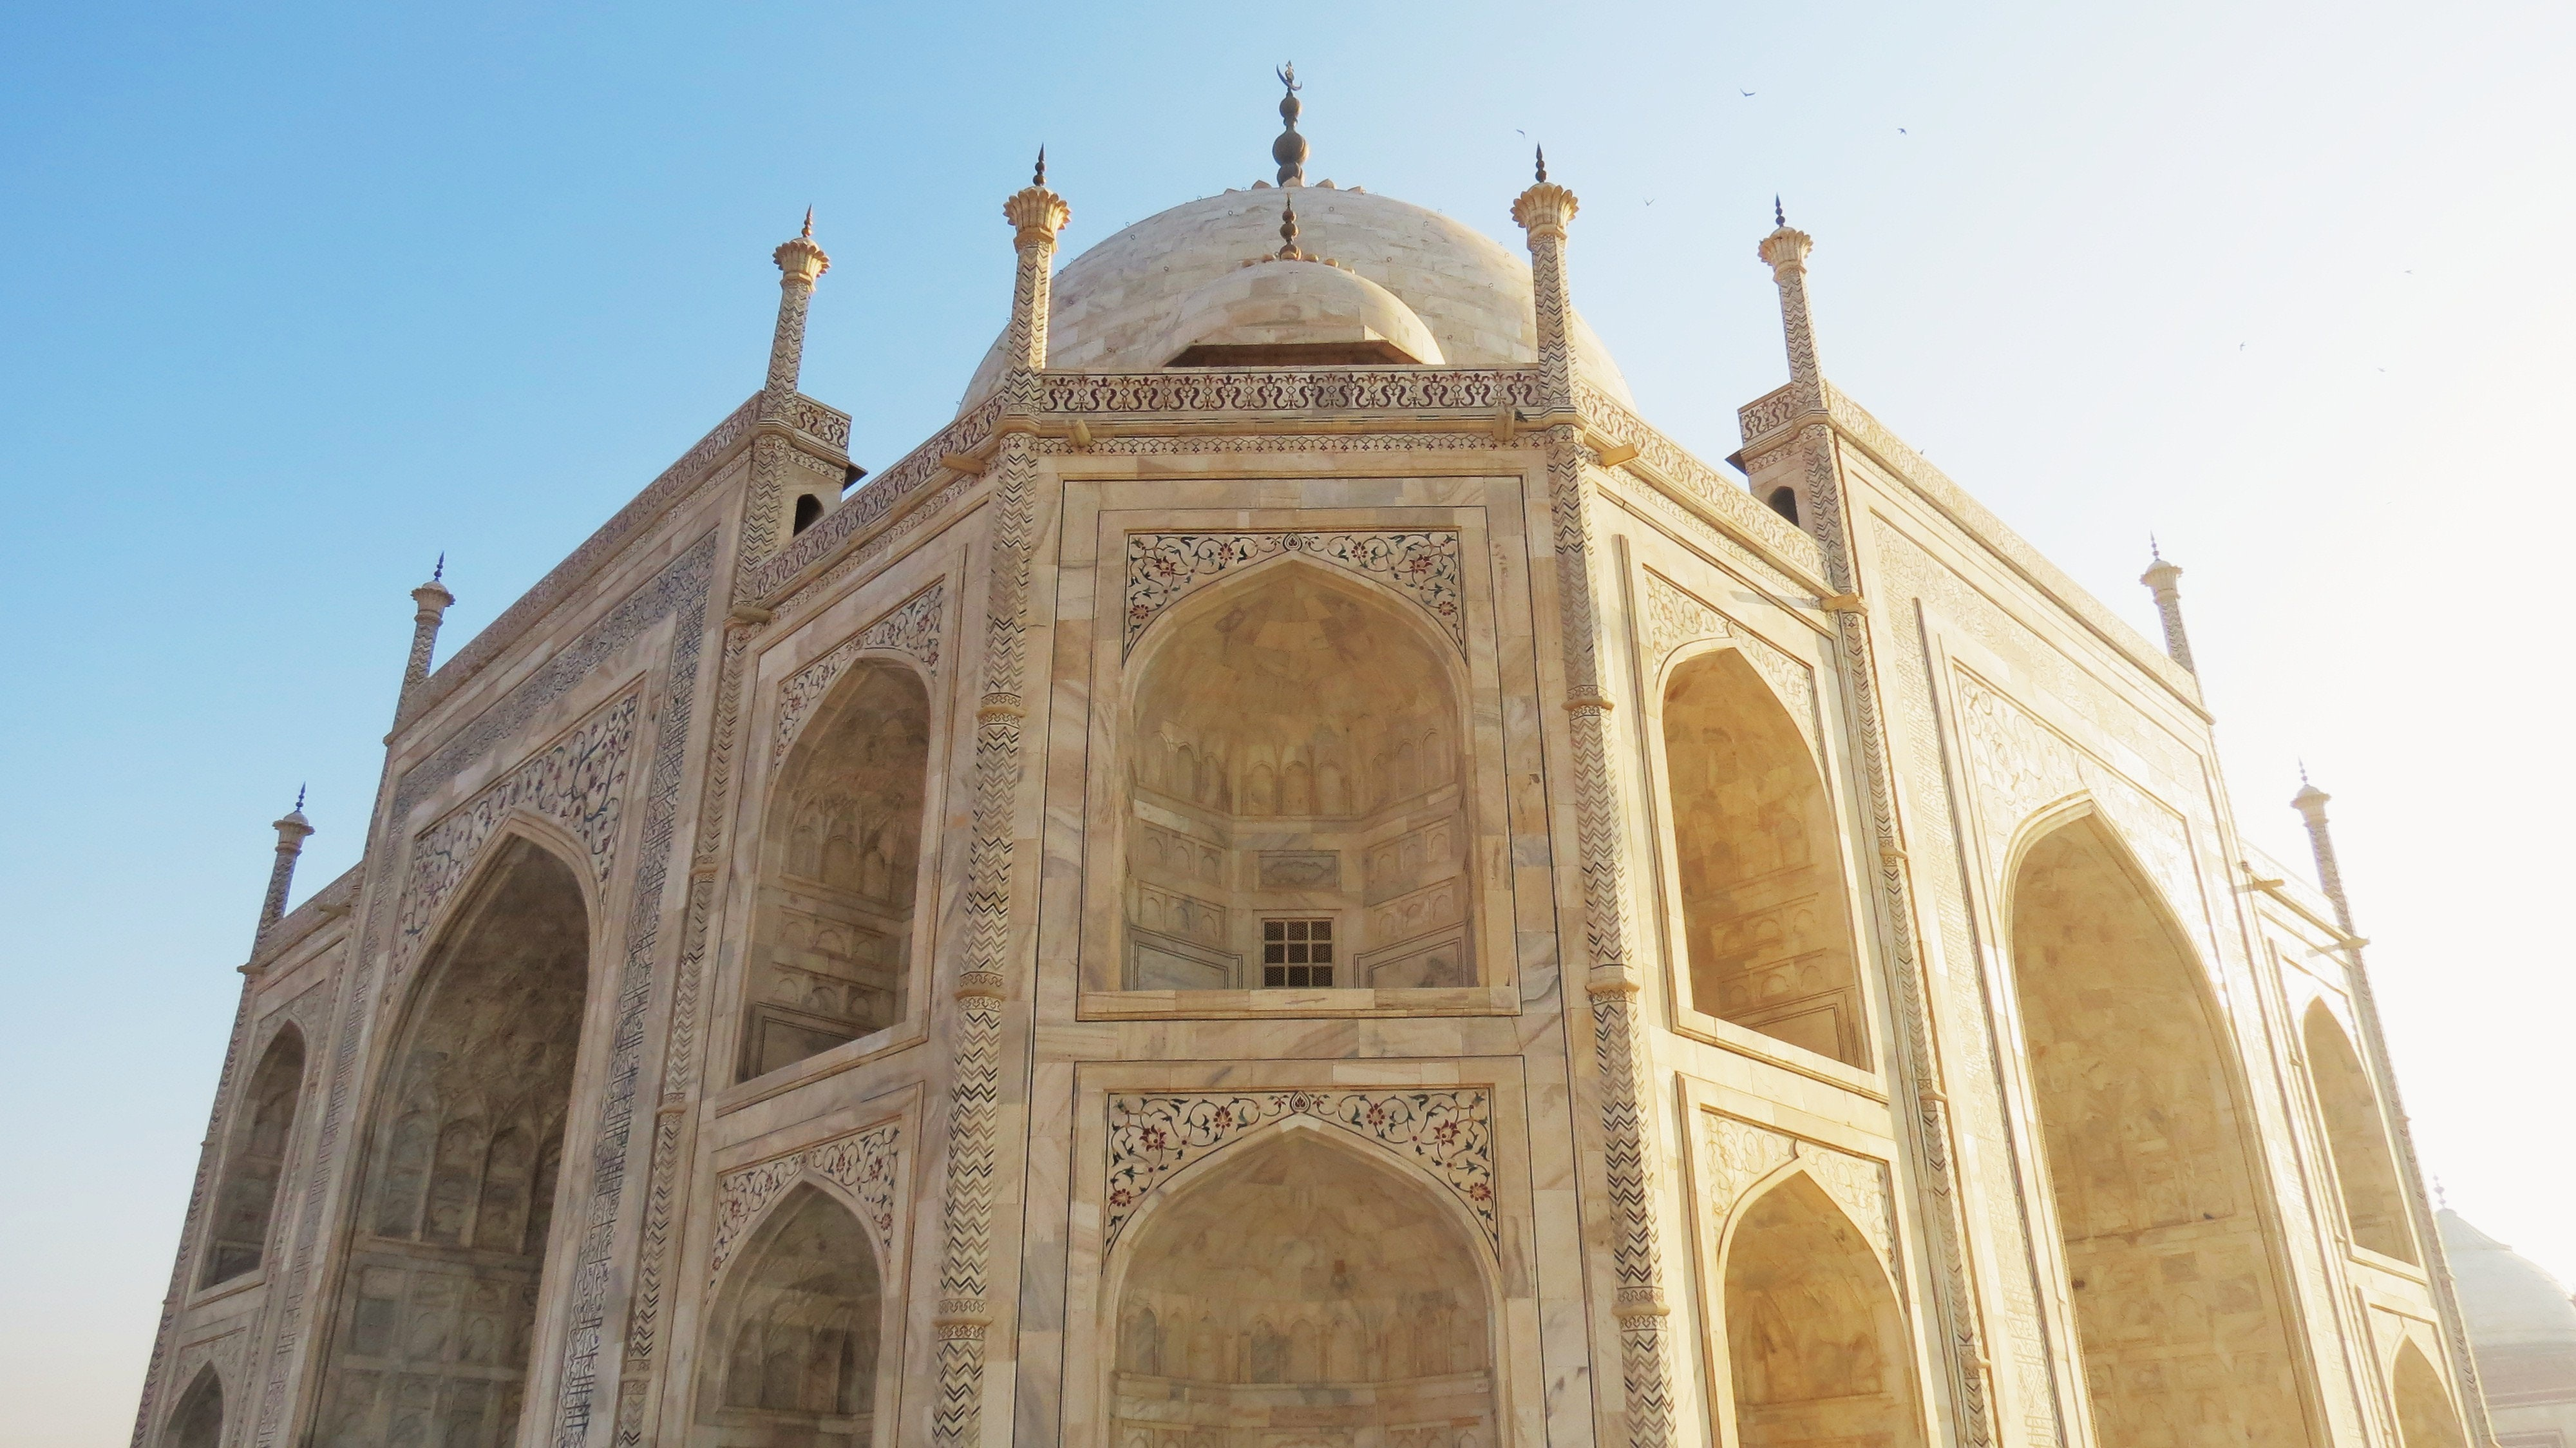 The Taj Mahal's identical sides